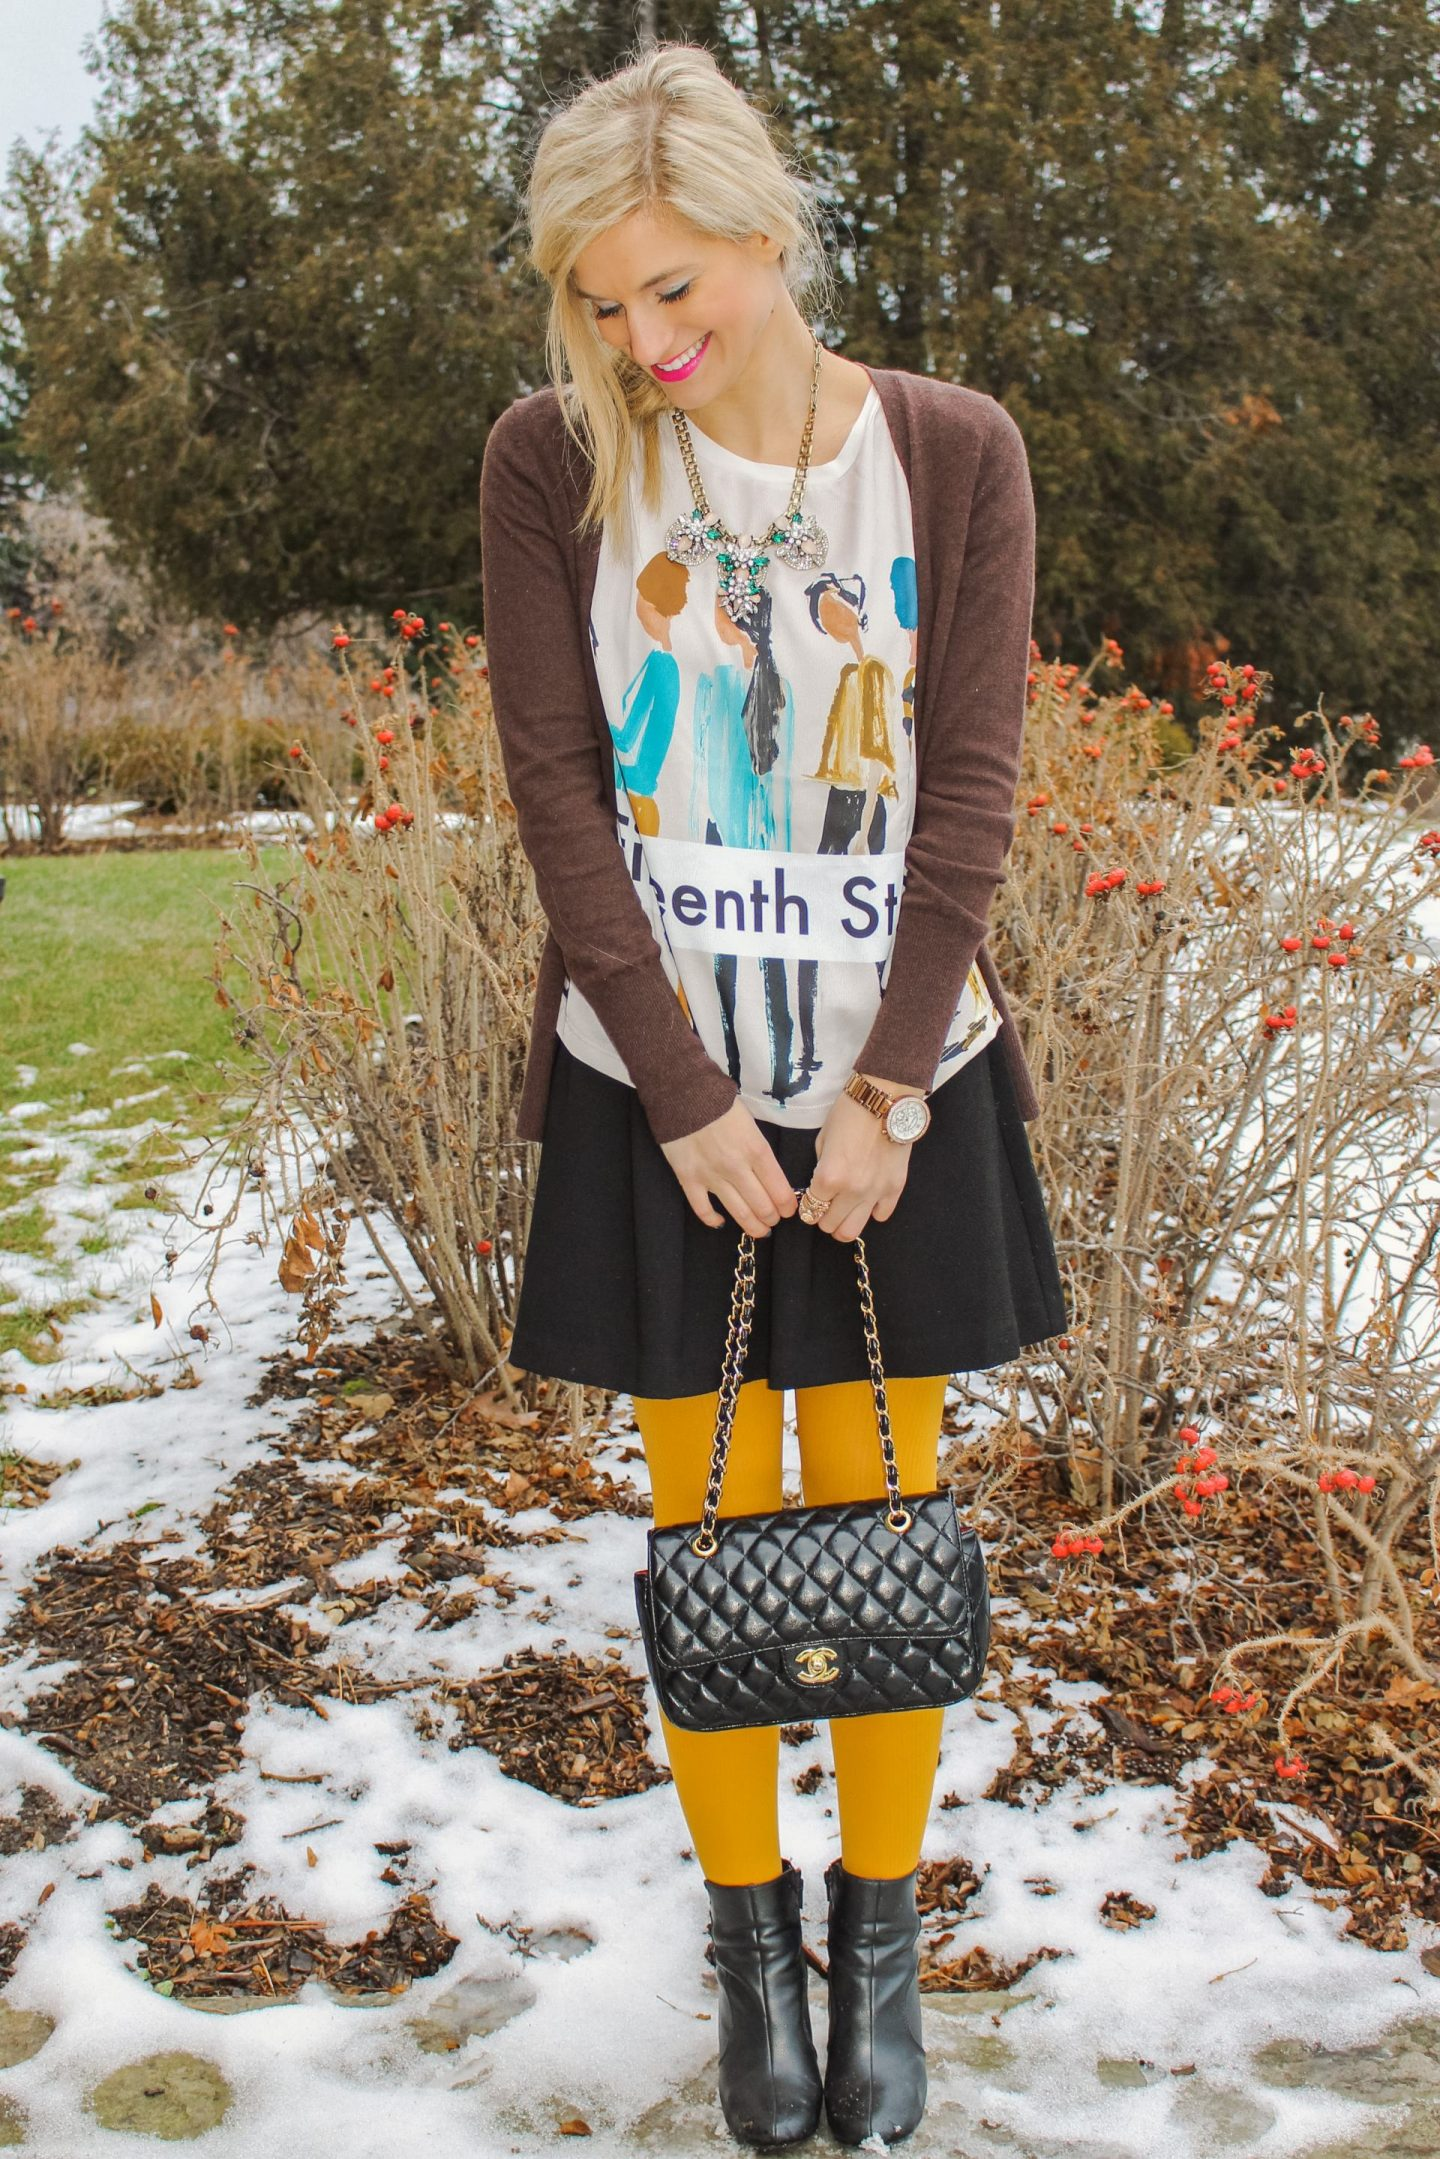 Wearing my colored tights in the winter with my everyday black skirt and Chanel purse.